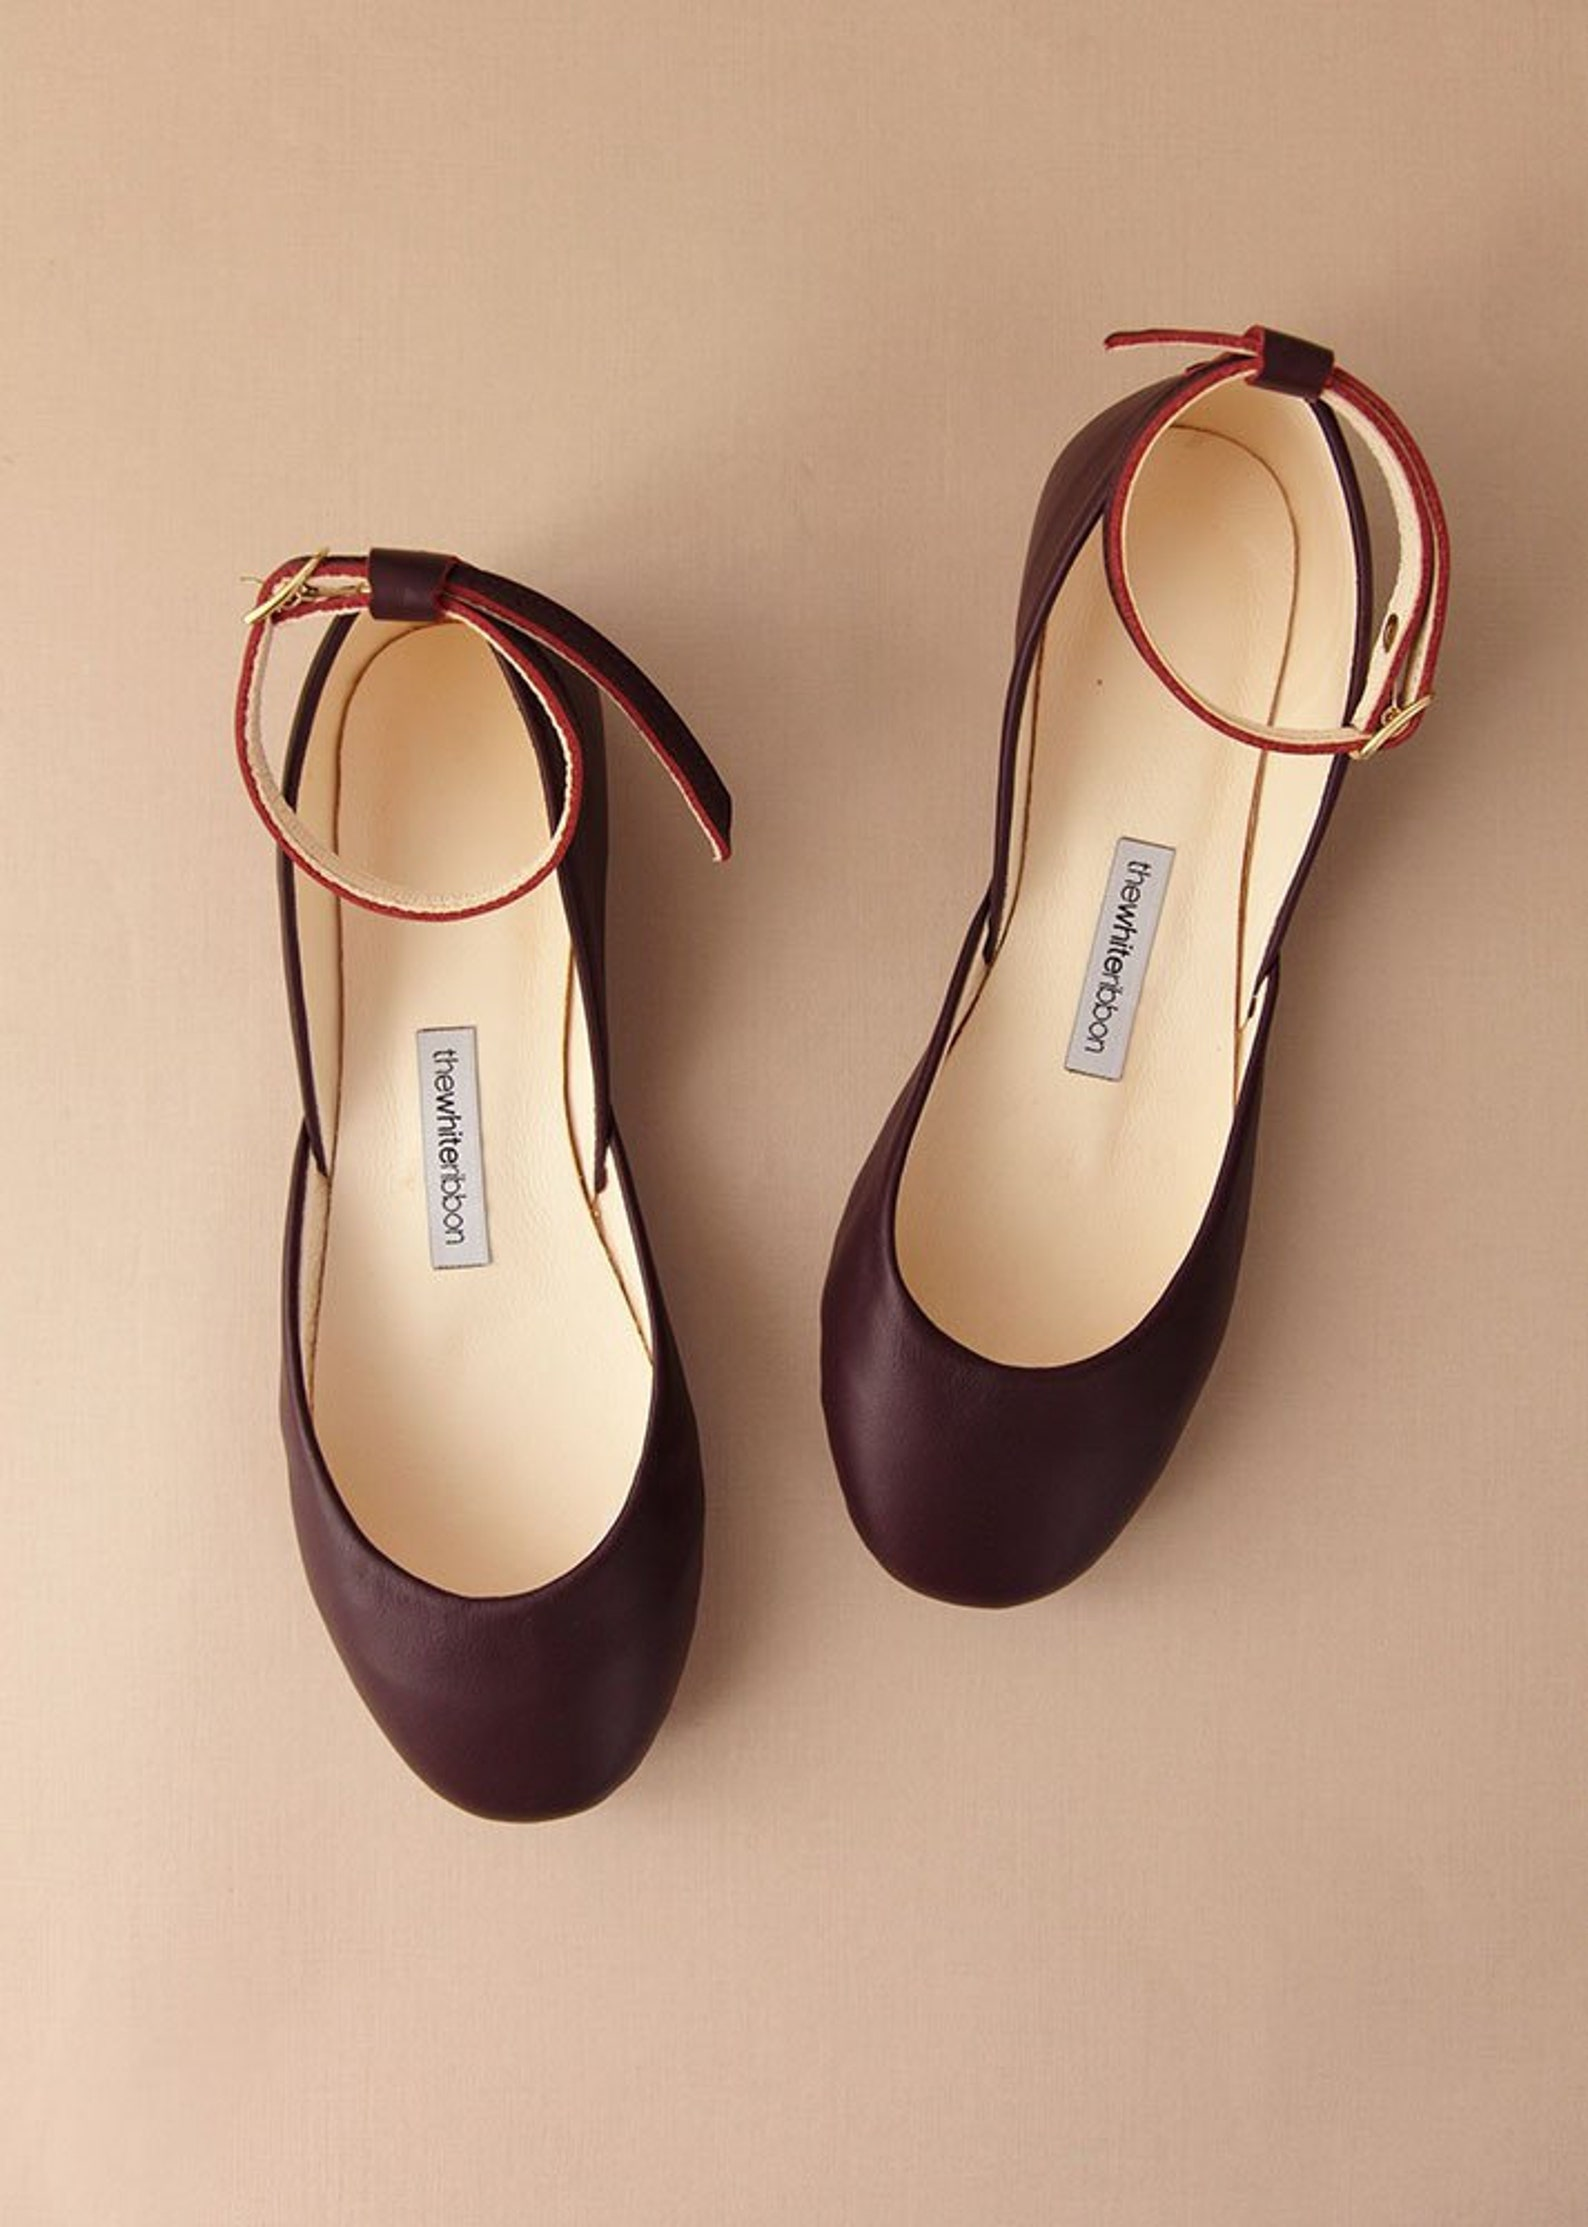 bordeaux leather ballet flats with ankle straps | mary jane flat shoes | classic cut and standard width | bordeaux | ready to sh